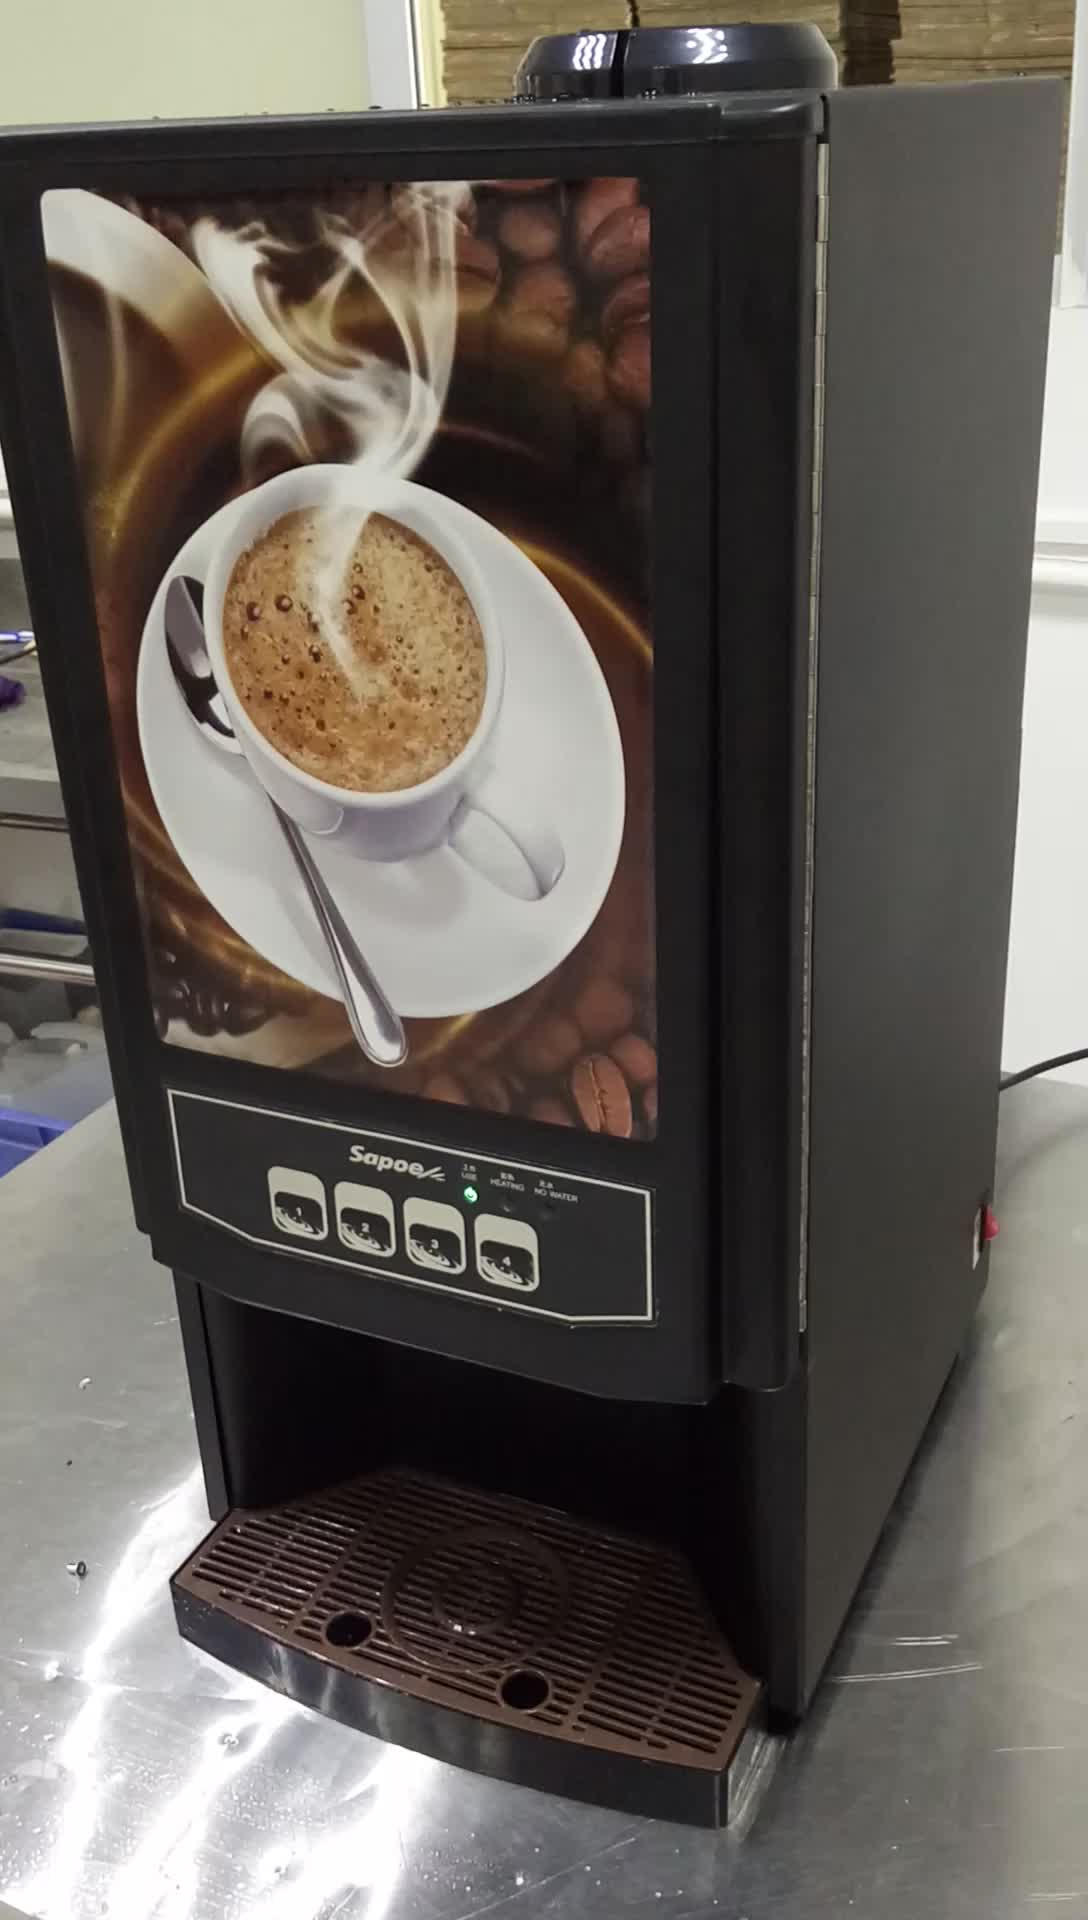 Idee Kaffee Office Coffee Service Nescafe Tea Kaffee Maschinen Vending Machine 2 Flavors